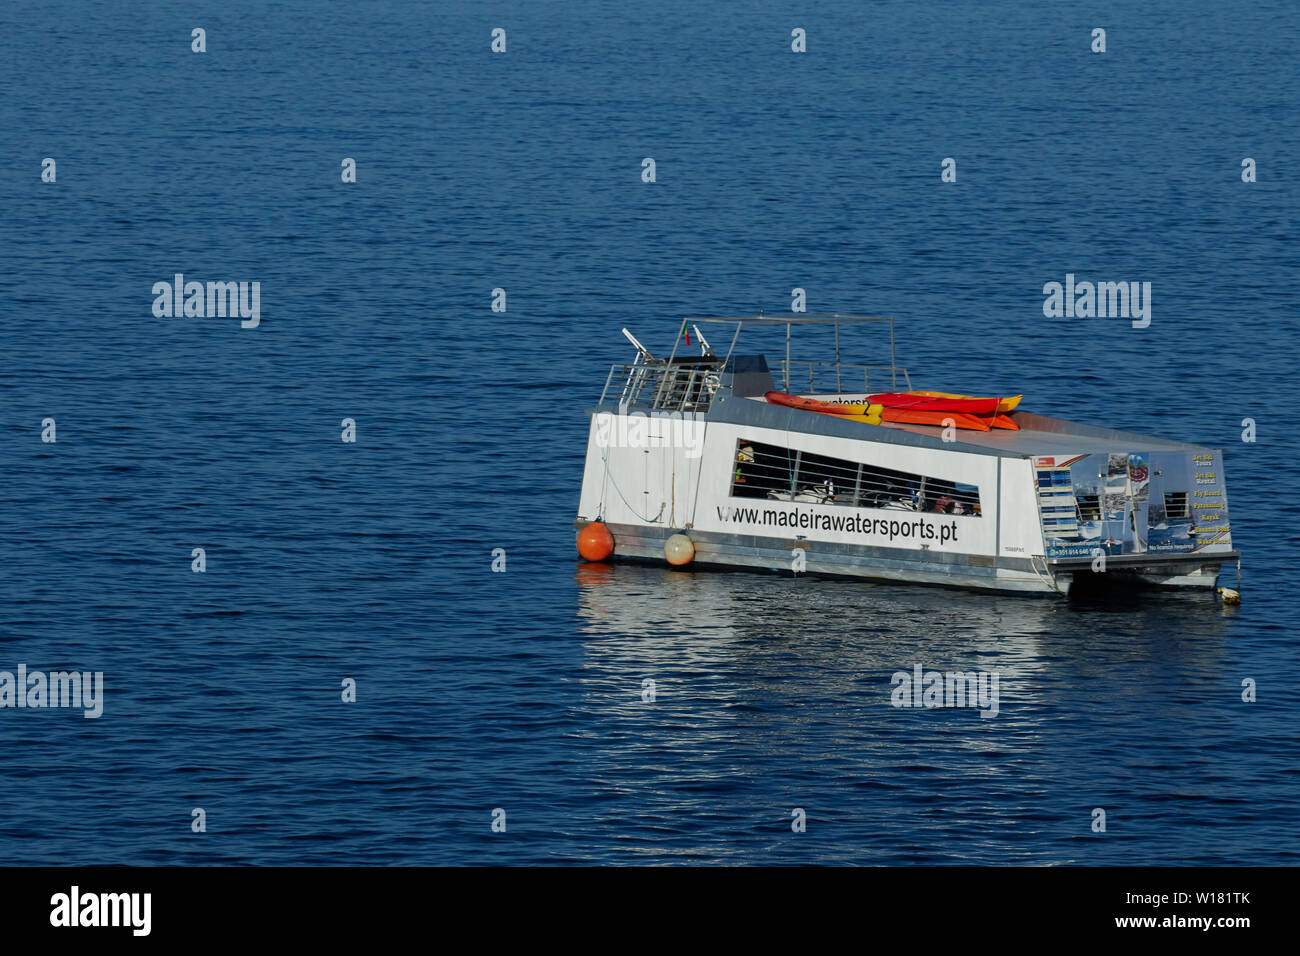 Pleasure boat moored in the North Atlantic Ocean off the coast of Madeira in the early morning before holidaymakers arrive. - Stock Image